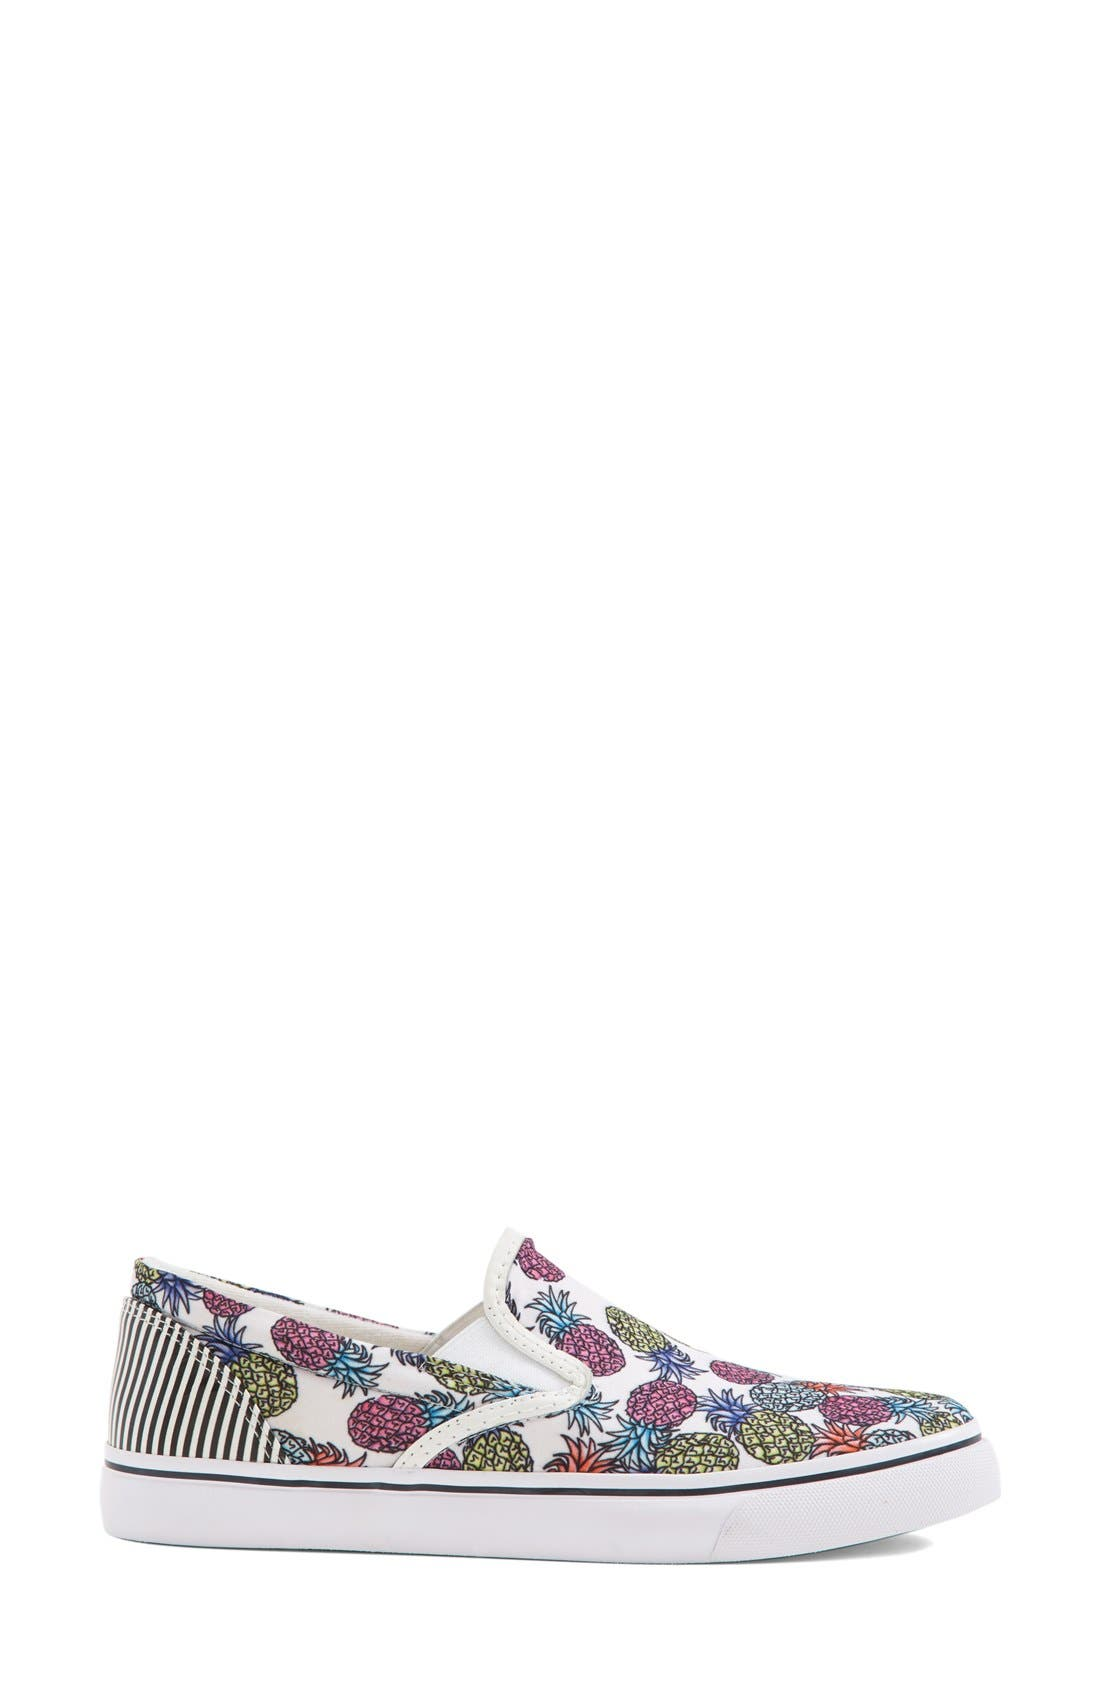 Alternate Image 4  - Sophia Webster 'Adele - Pineapple' Satin Slip-On Sneaker (Women)